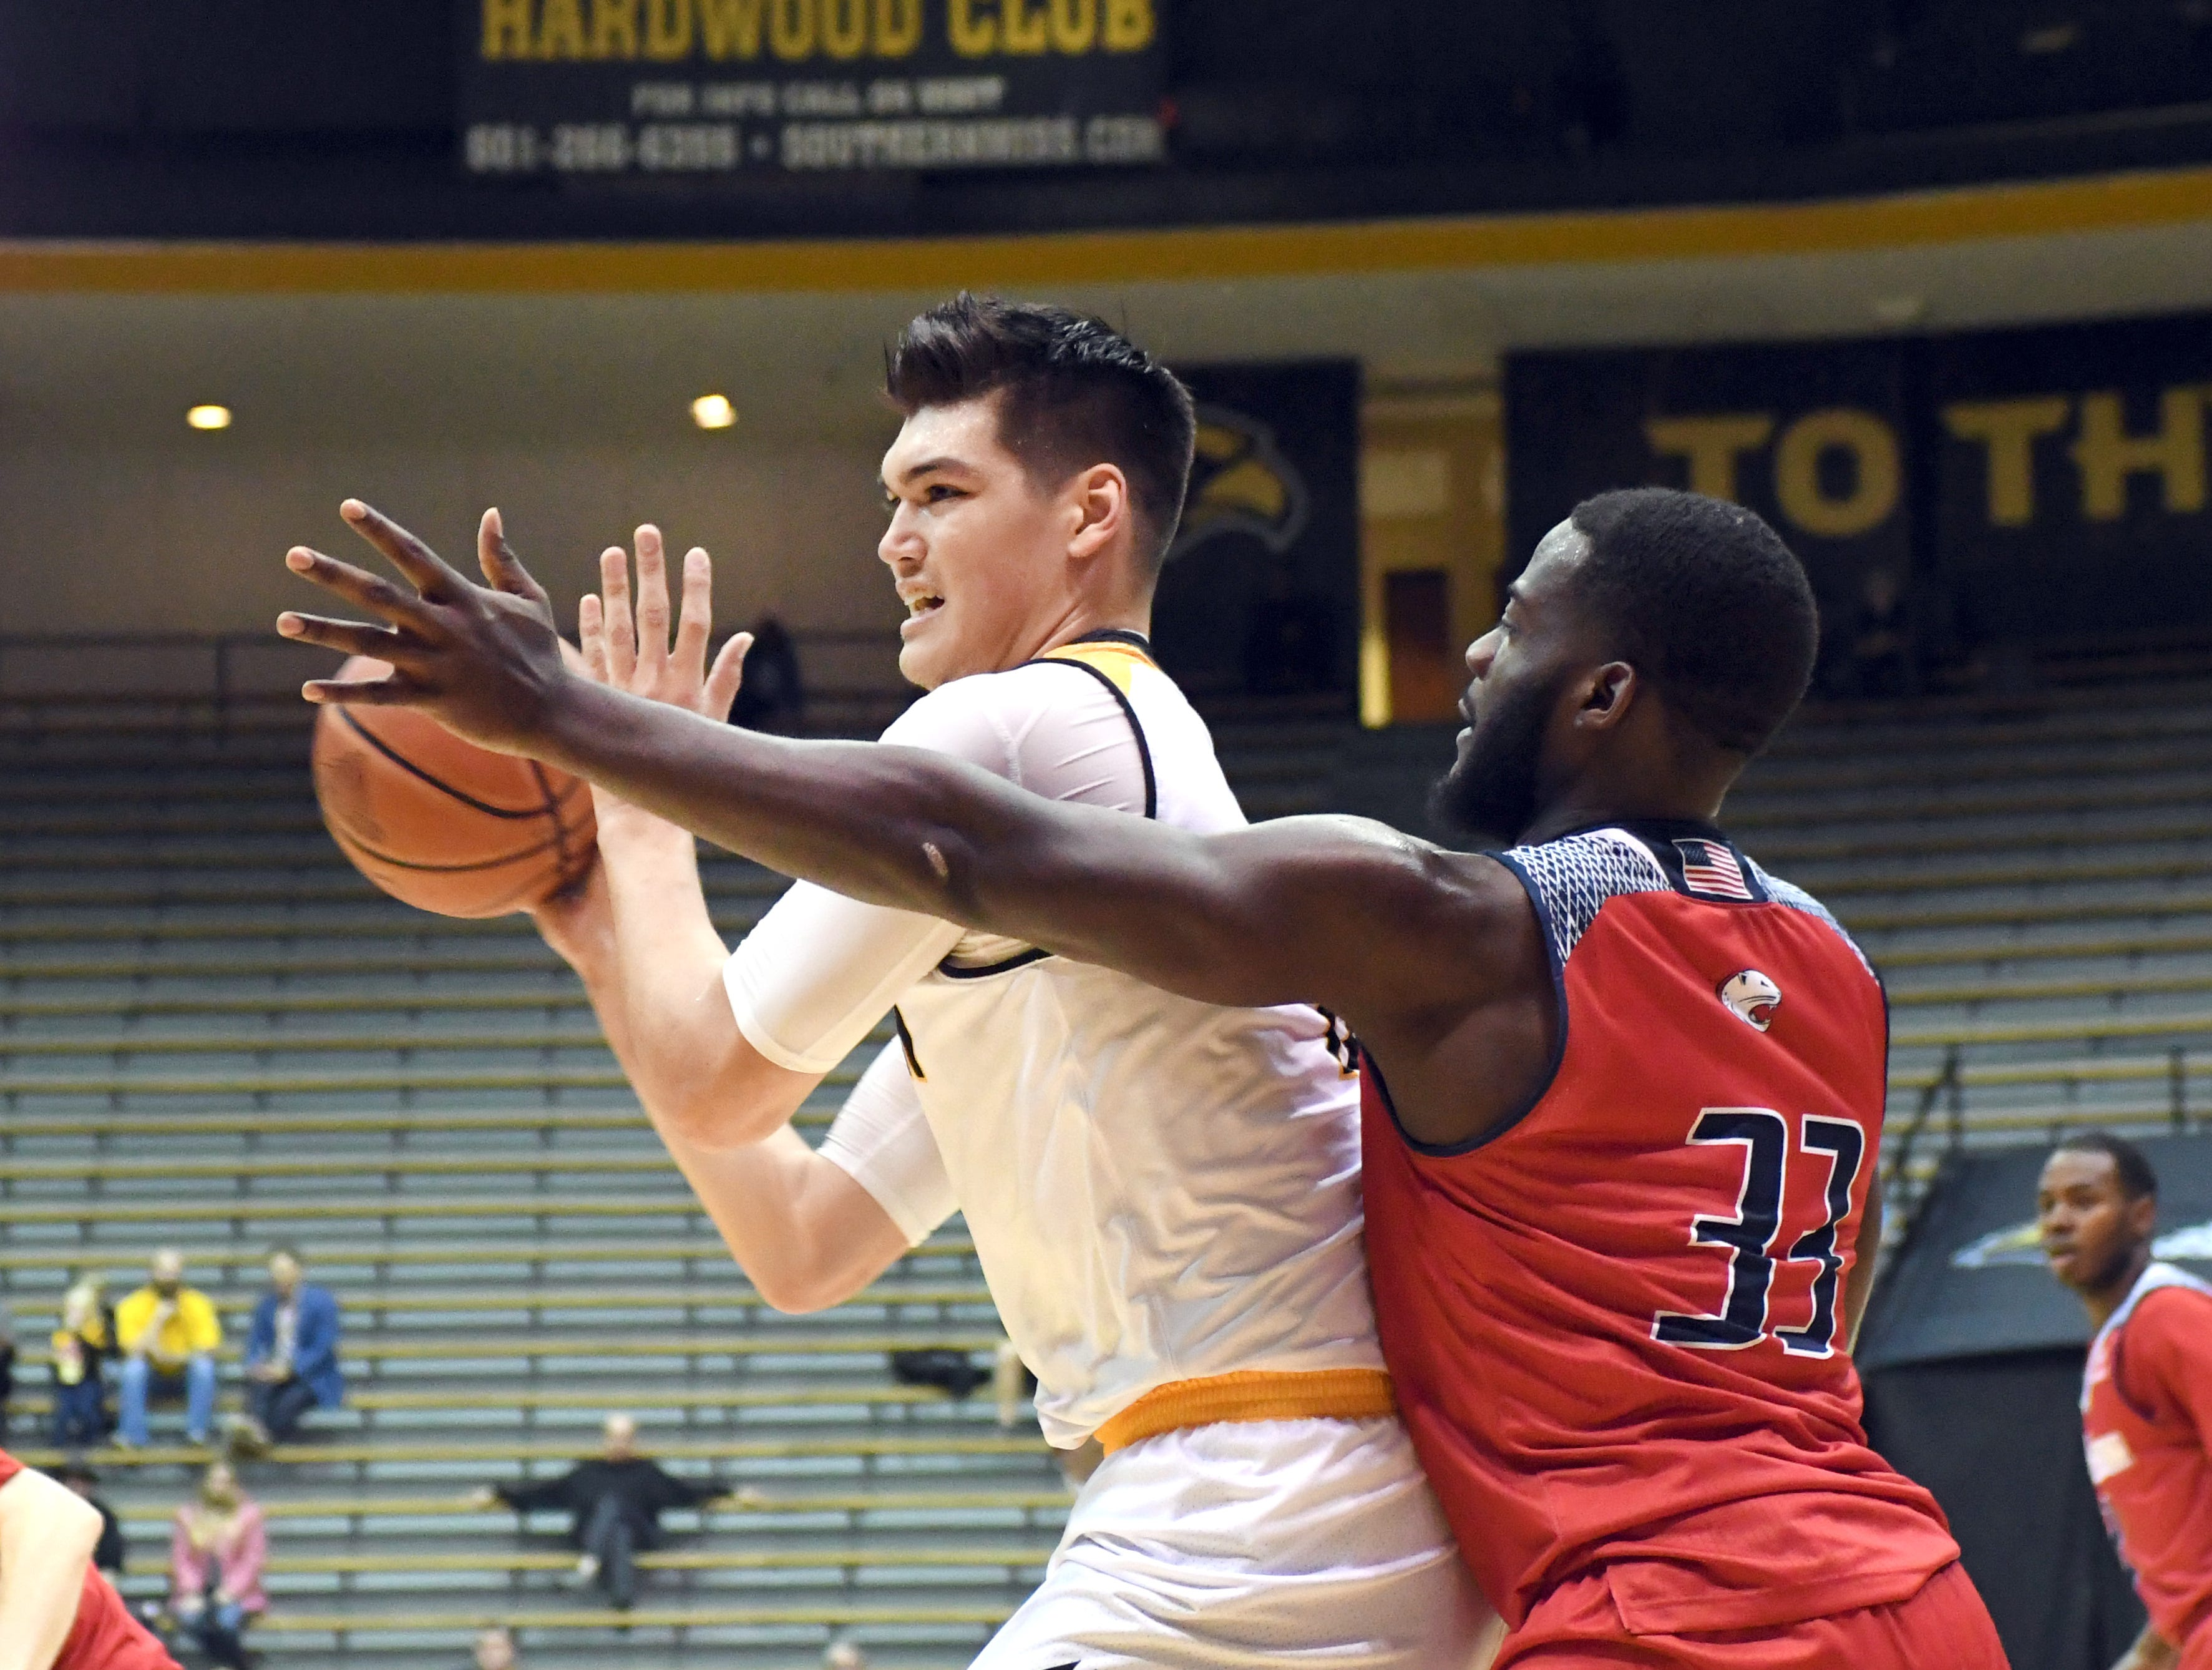 Southern Miss forward Tim Rowe fights off a defender in a game against South Alabama in Reed Green Coliseum on Wednesday, November 28, 2018.